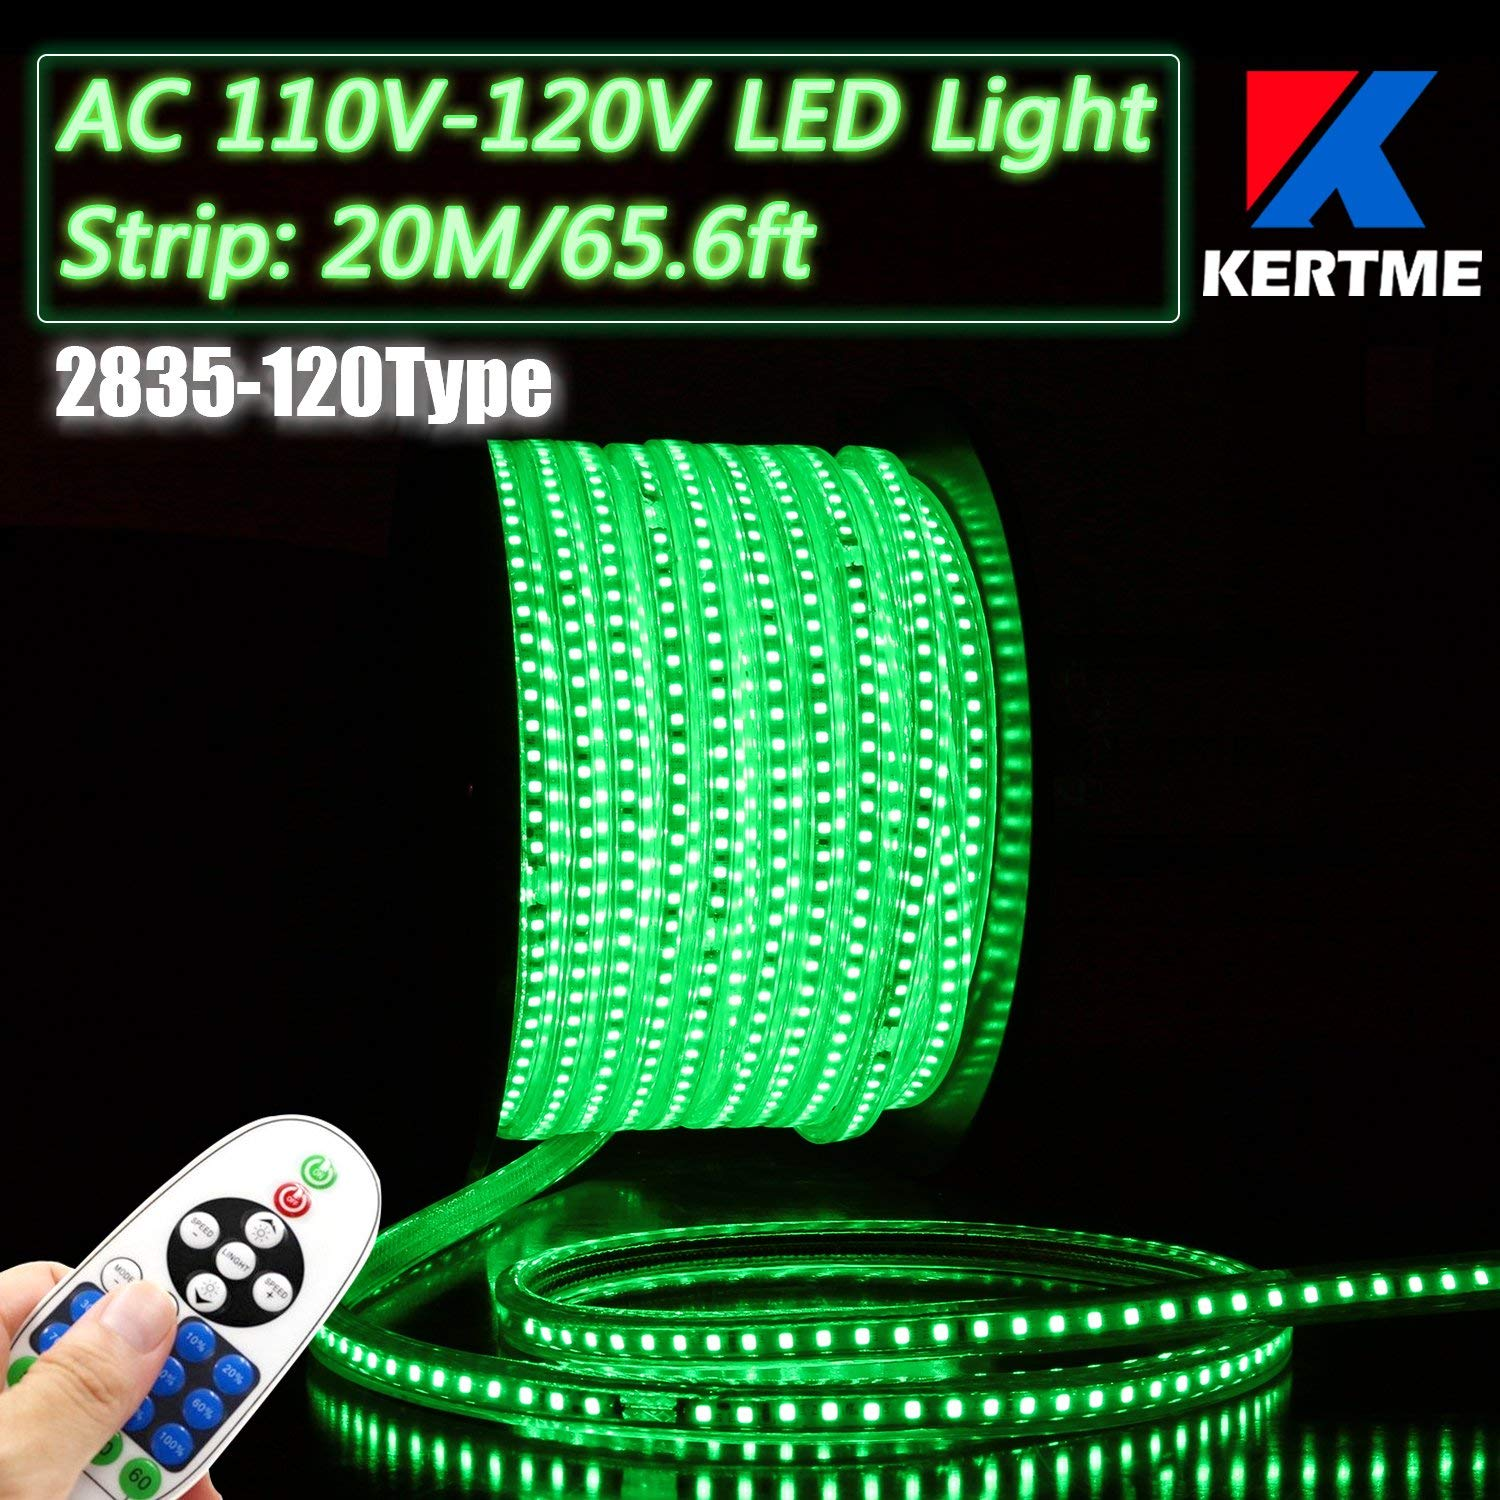 KERTME 2835-120 Type AC 110-120V Green LED Strip Lights, Flexible/Waterproof/Dimmable/Multi-Modes LED Rope Light + 23 Keys Remote for Home/Garden/Building Decoration (65.6ft/20m, Green)